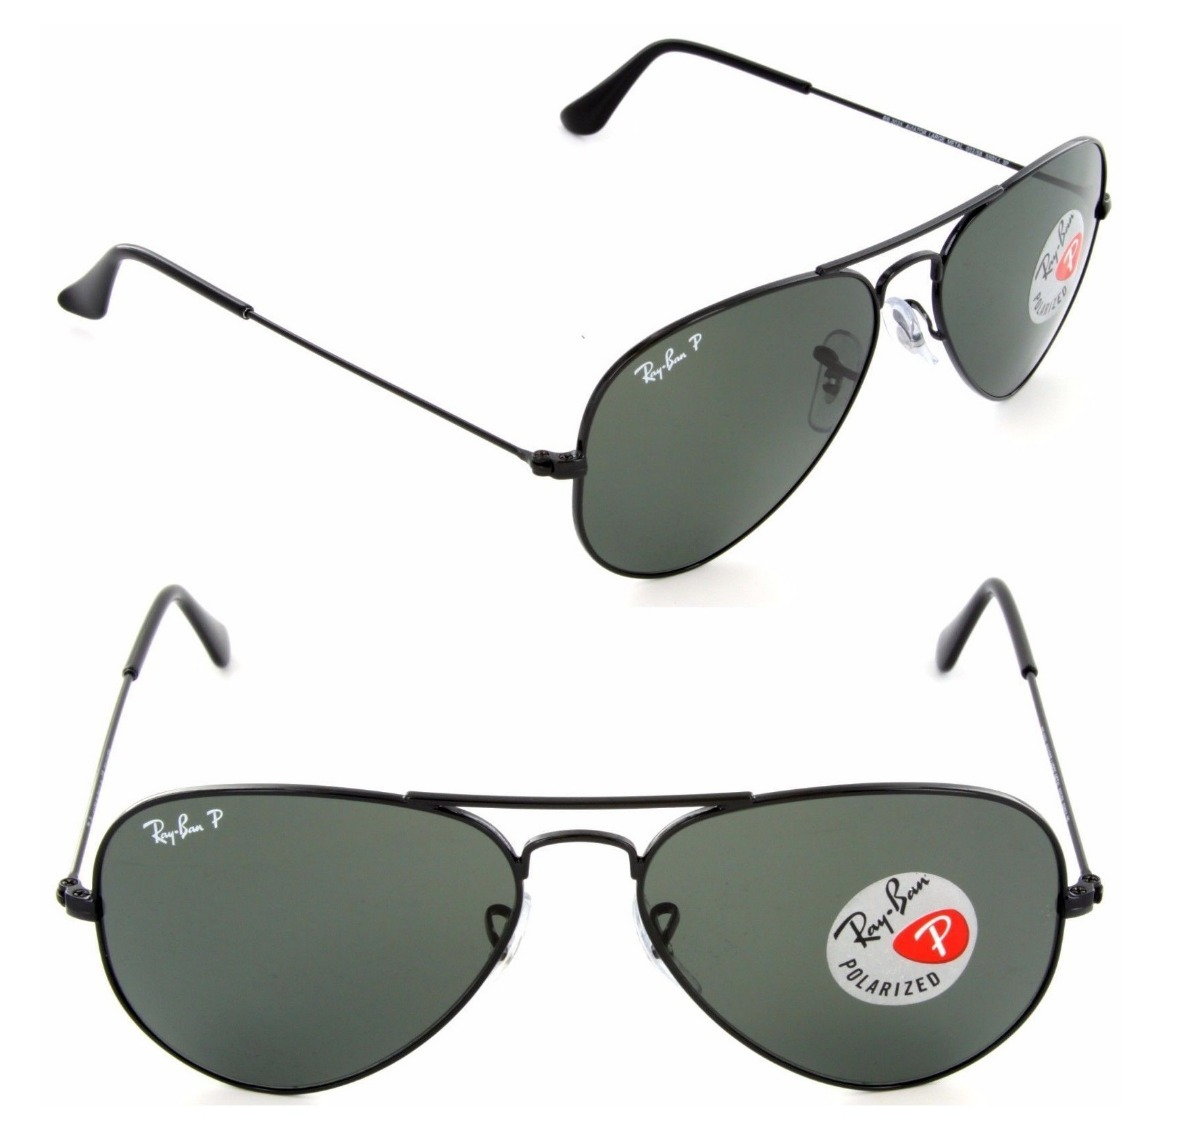 97d7c3f320796 ray ban polarizado rb3025 002 58 58 aviador preto medio 3025. Carregando  zoom.